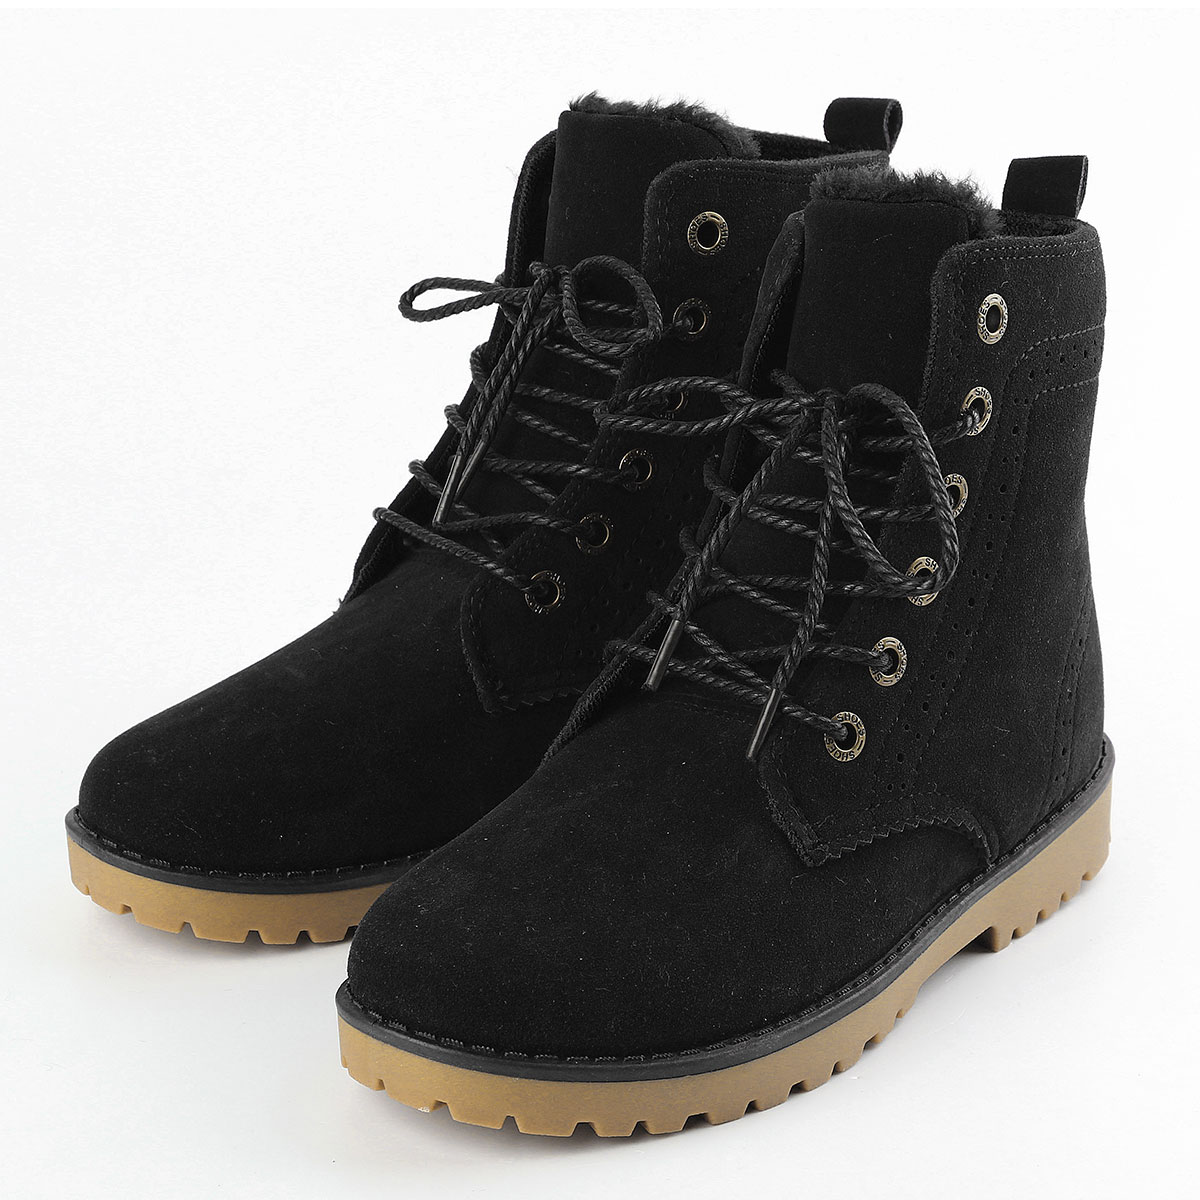 womens mens genuine leather mid calf boots snow boots warm